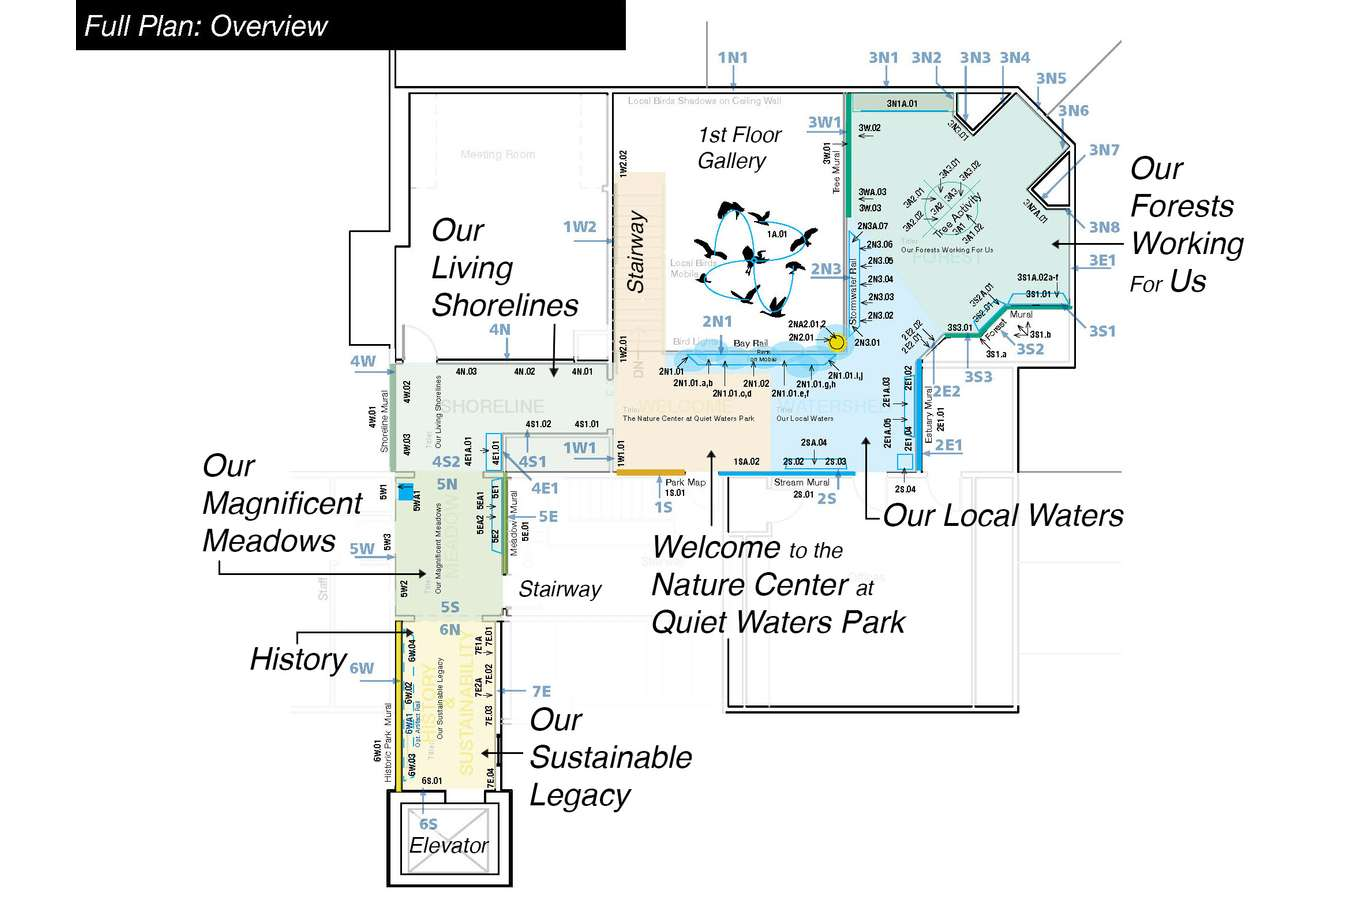 3 QWP MB web 03 : Schematic Floorpan showing graphic layout, key murals and thematic areas.